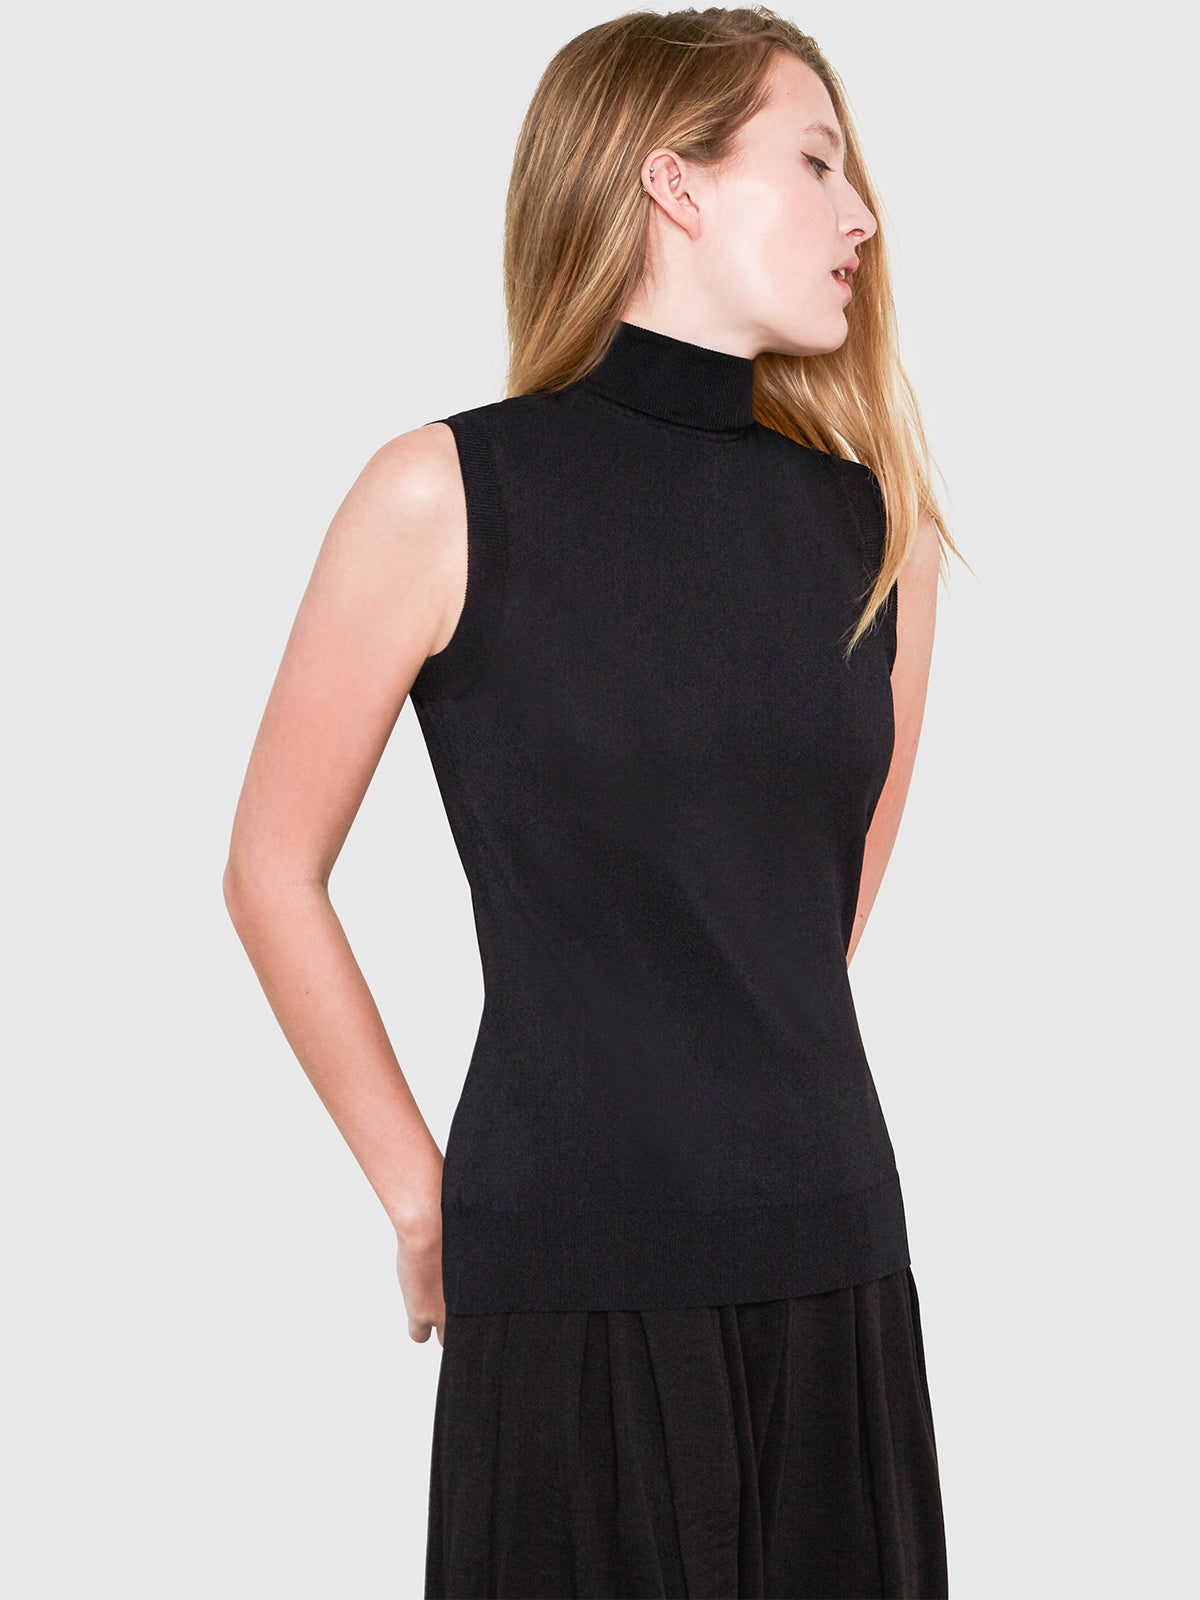 Hepburn Sleeveless Turtleneck Sweater | Black